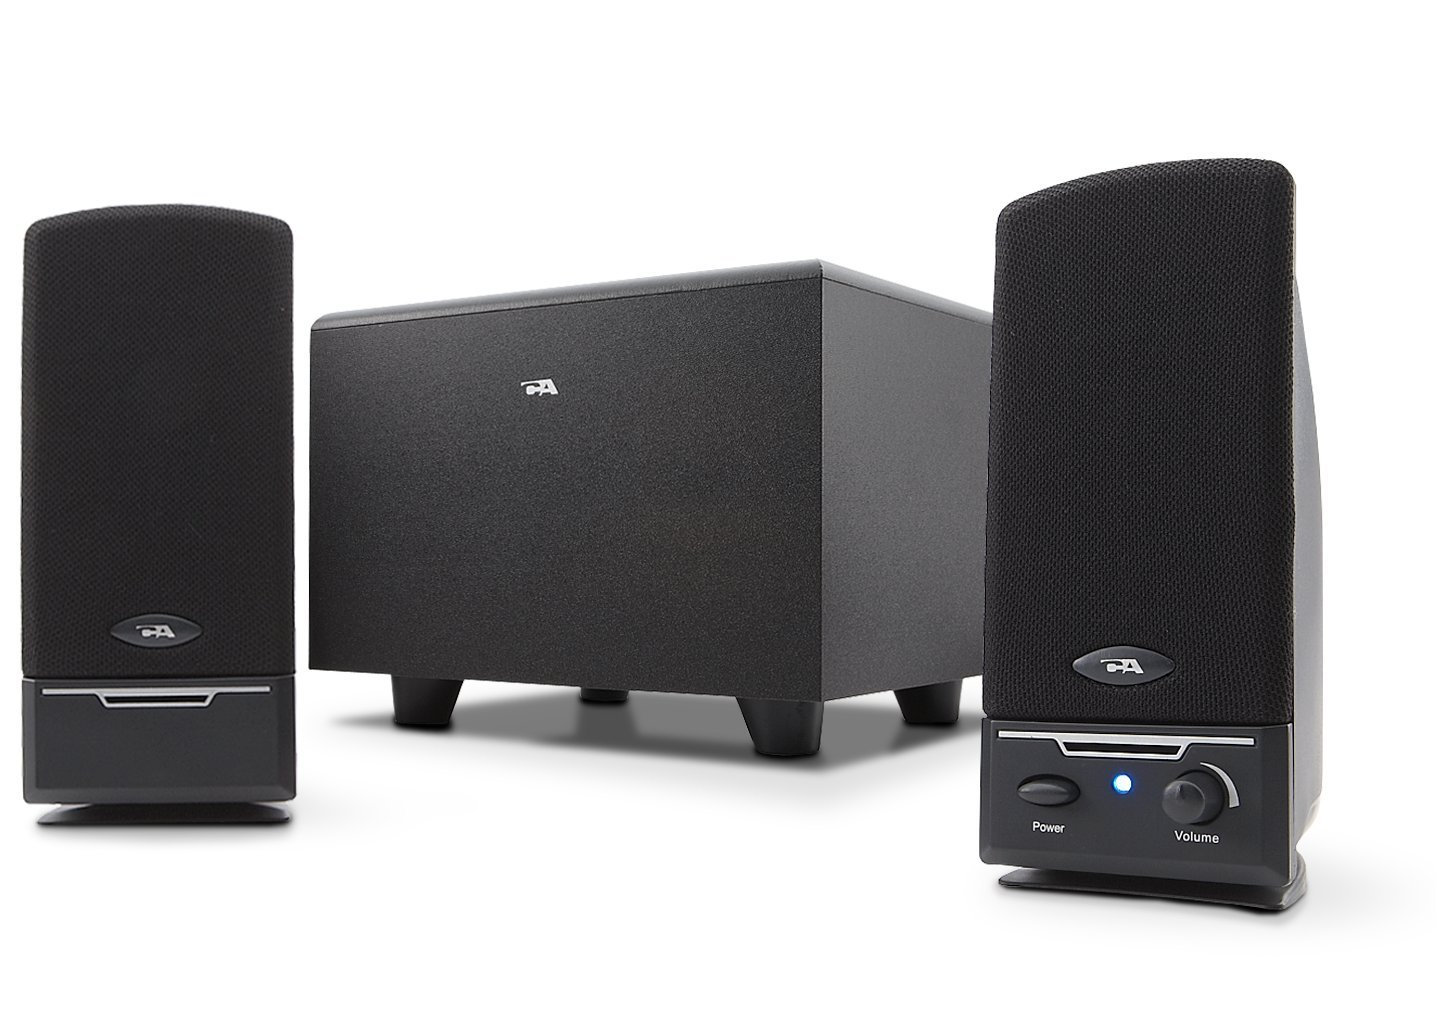 Cyber Acoustics CA-3001RB 3Pc Subwoofer and Satellite Speaker System, Black MP3 & Media Player Accessories